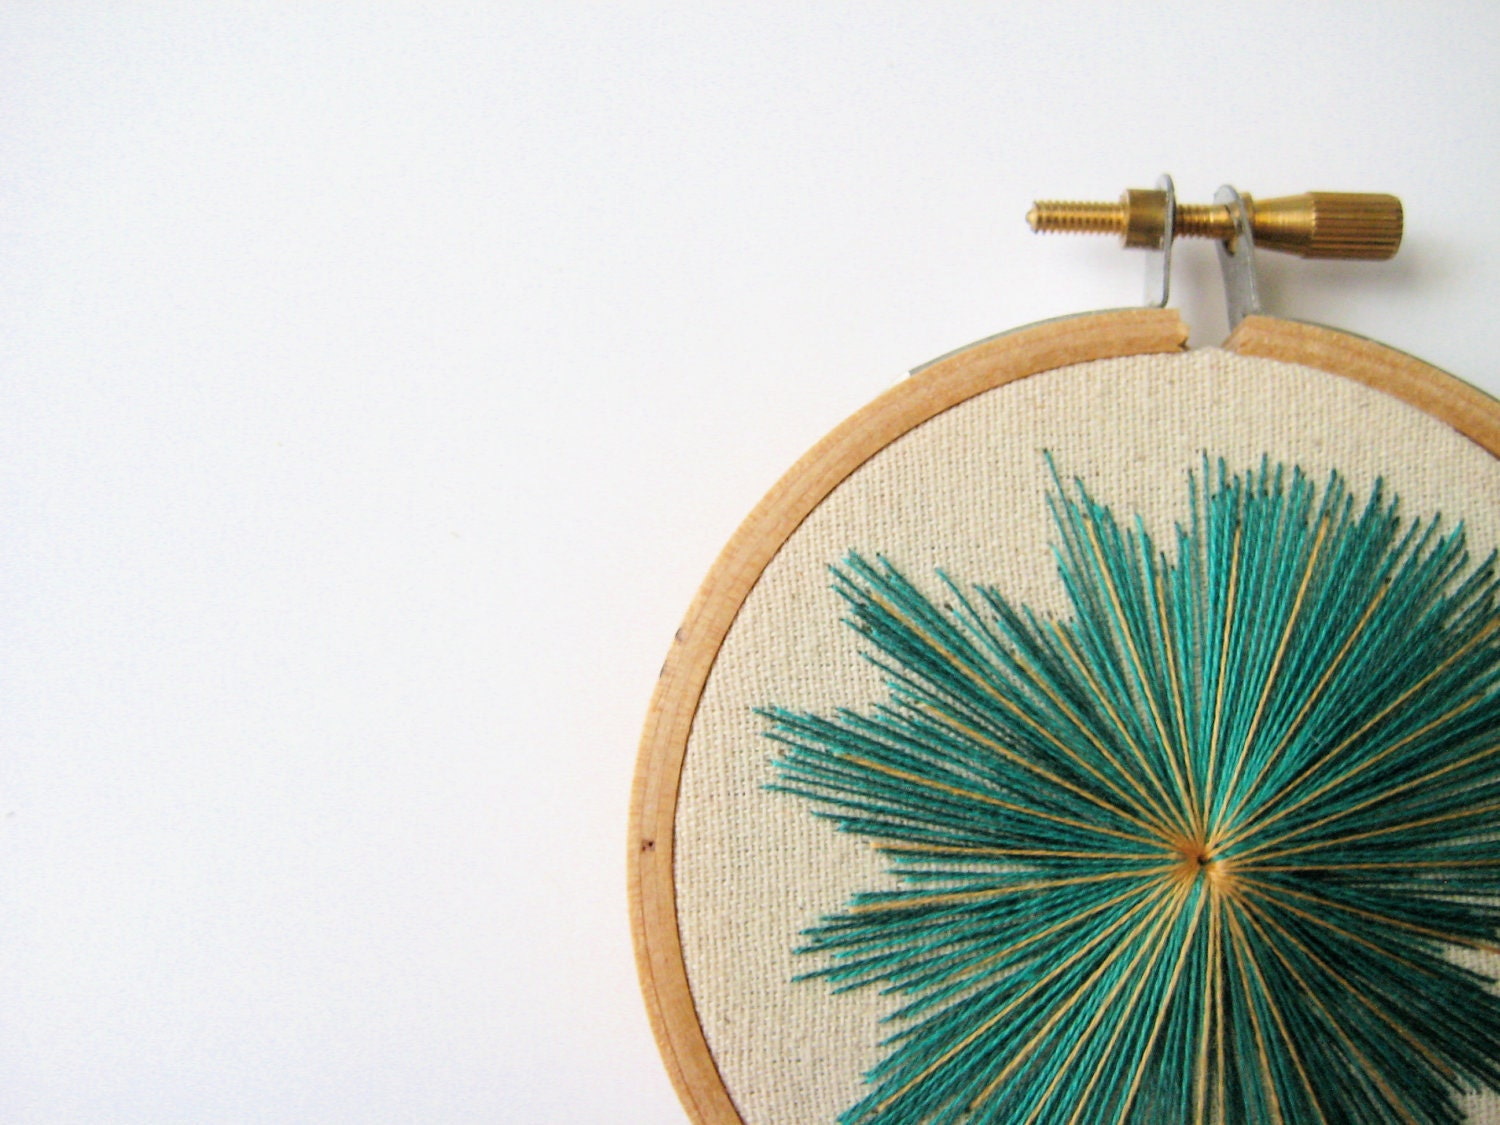 Teal, Blue and Gold Starburst Embroidery Hoop Art - IFeltFuzzy